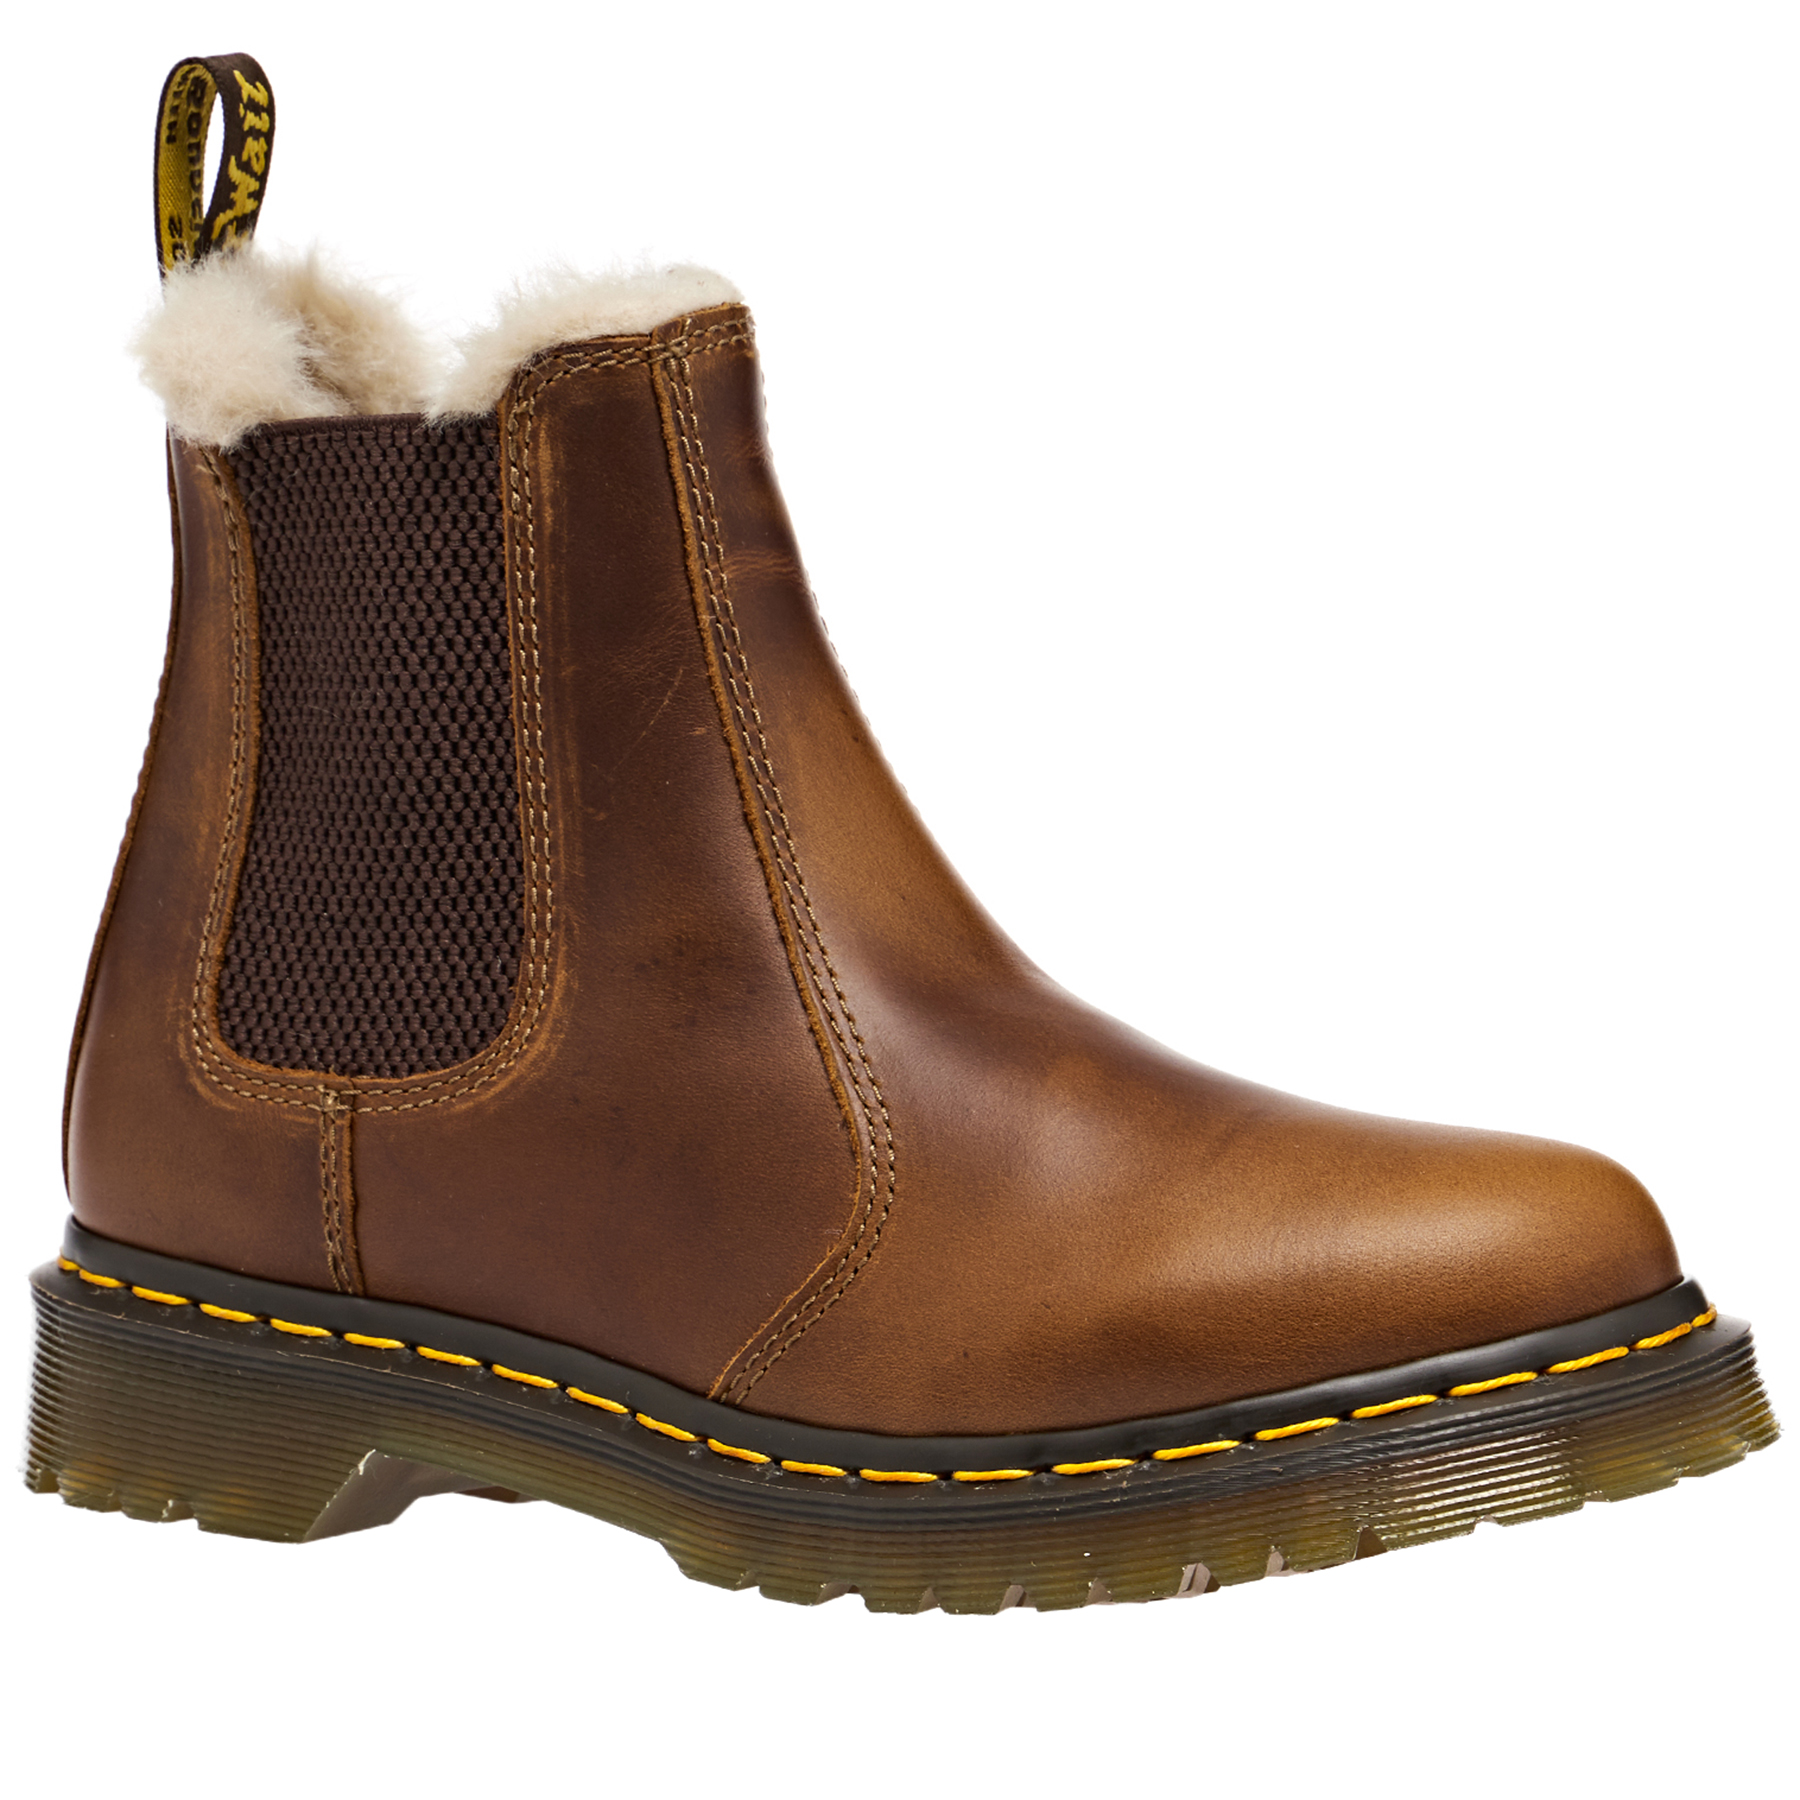 Dr Martens 2976 Leonore Ladies Boots available from Blackleaf